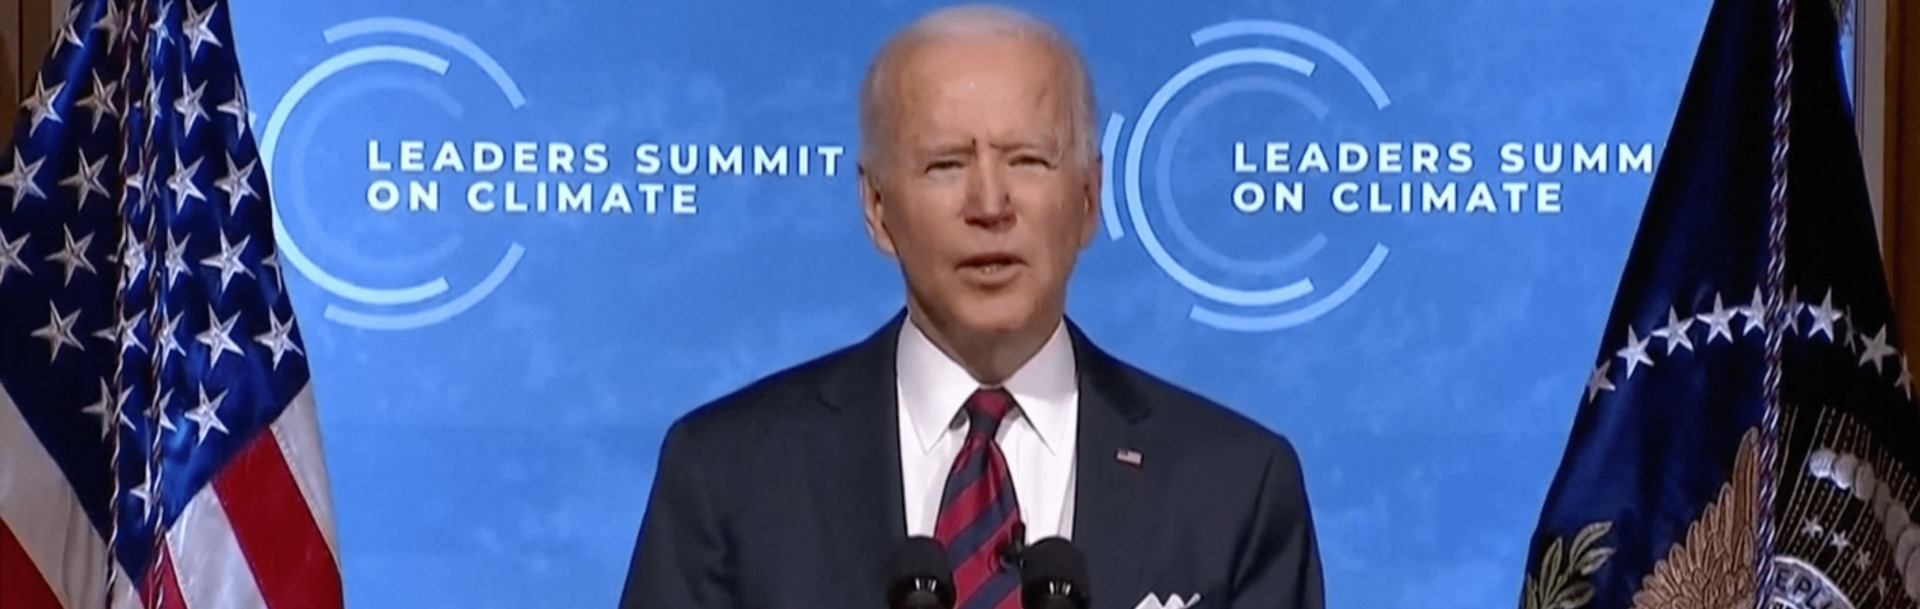 Climate Summit 2021: President Joe Biden Announces the United States Will Aim to Cut Carbon Emissions by as Much as 52% by 2030